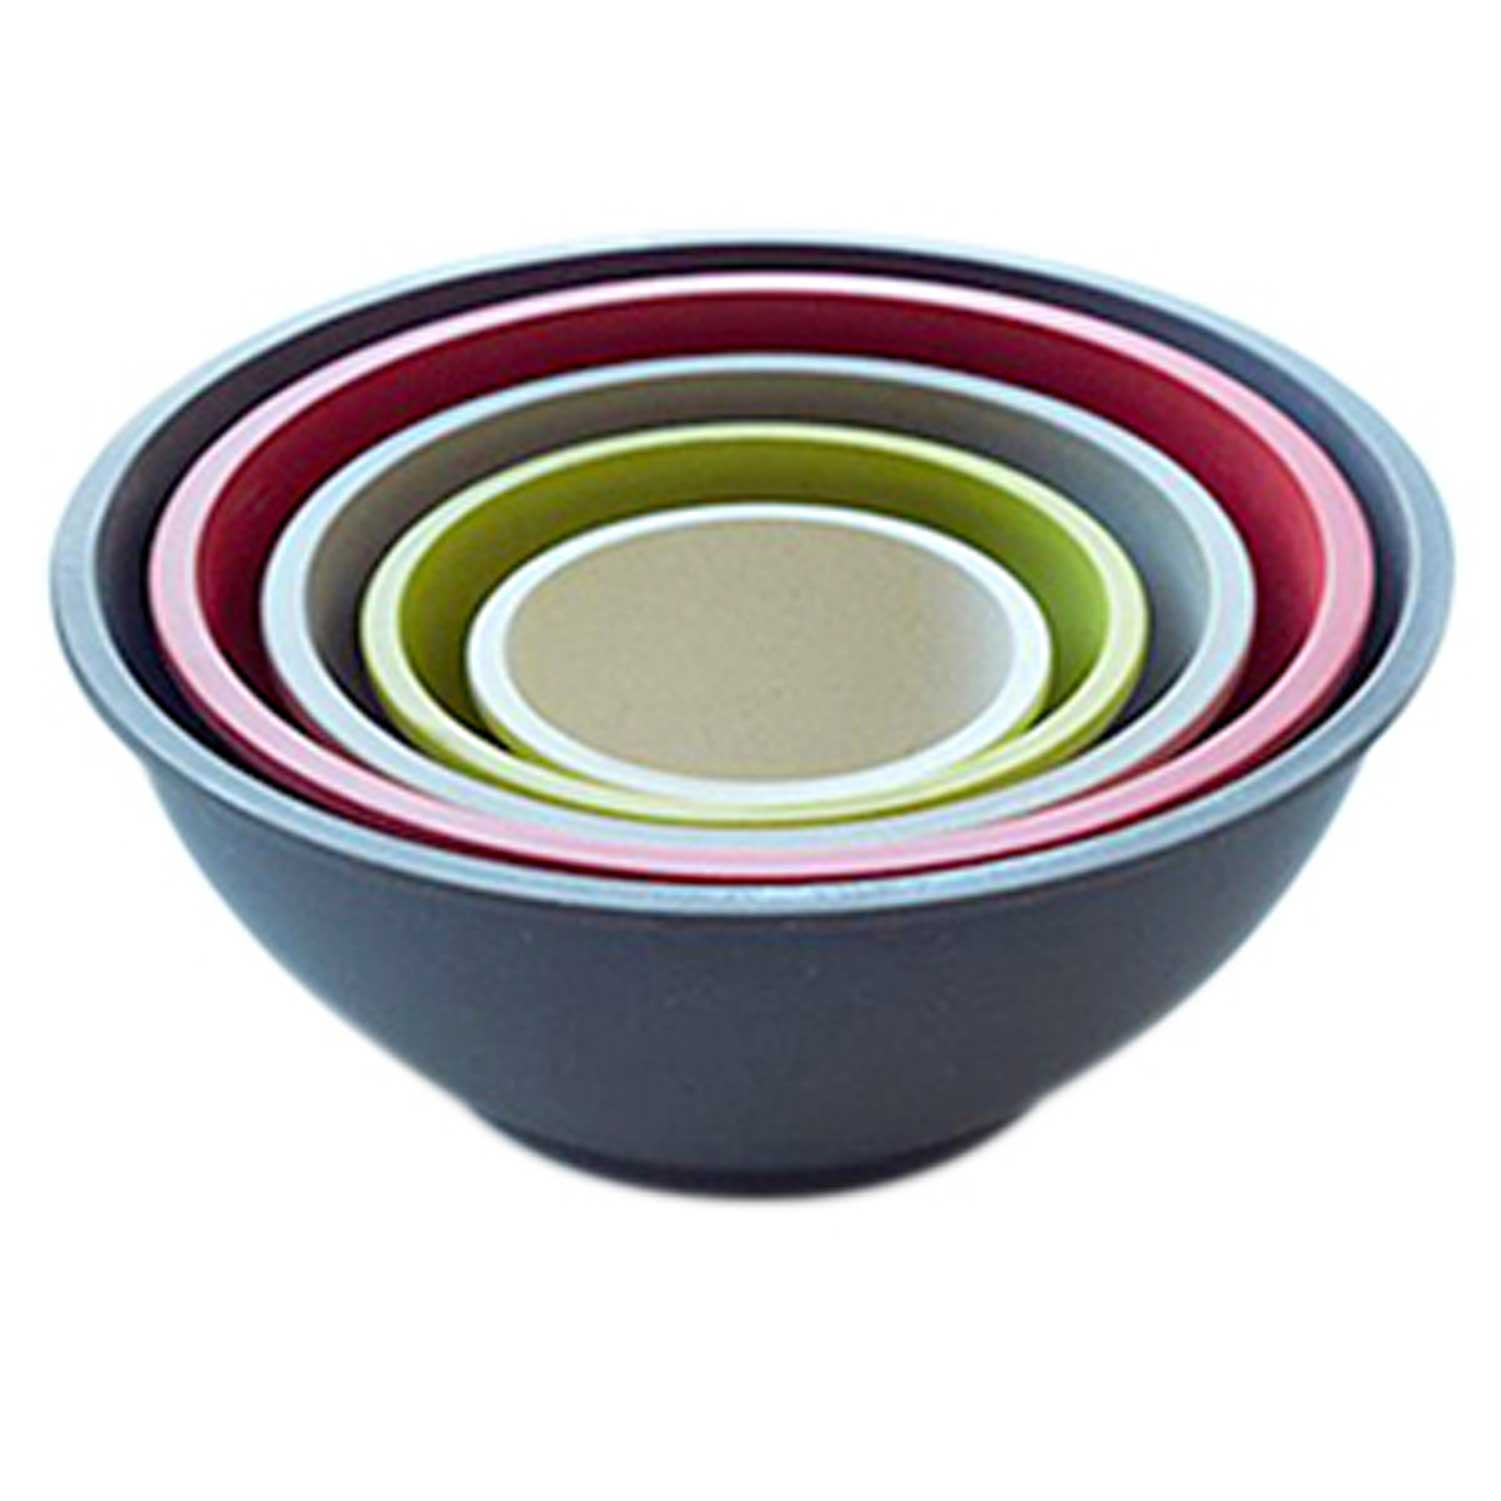 5 Piece Earth Tones Bowl Set